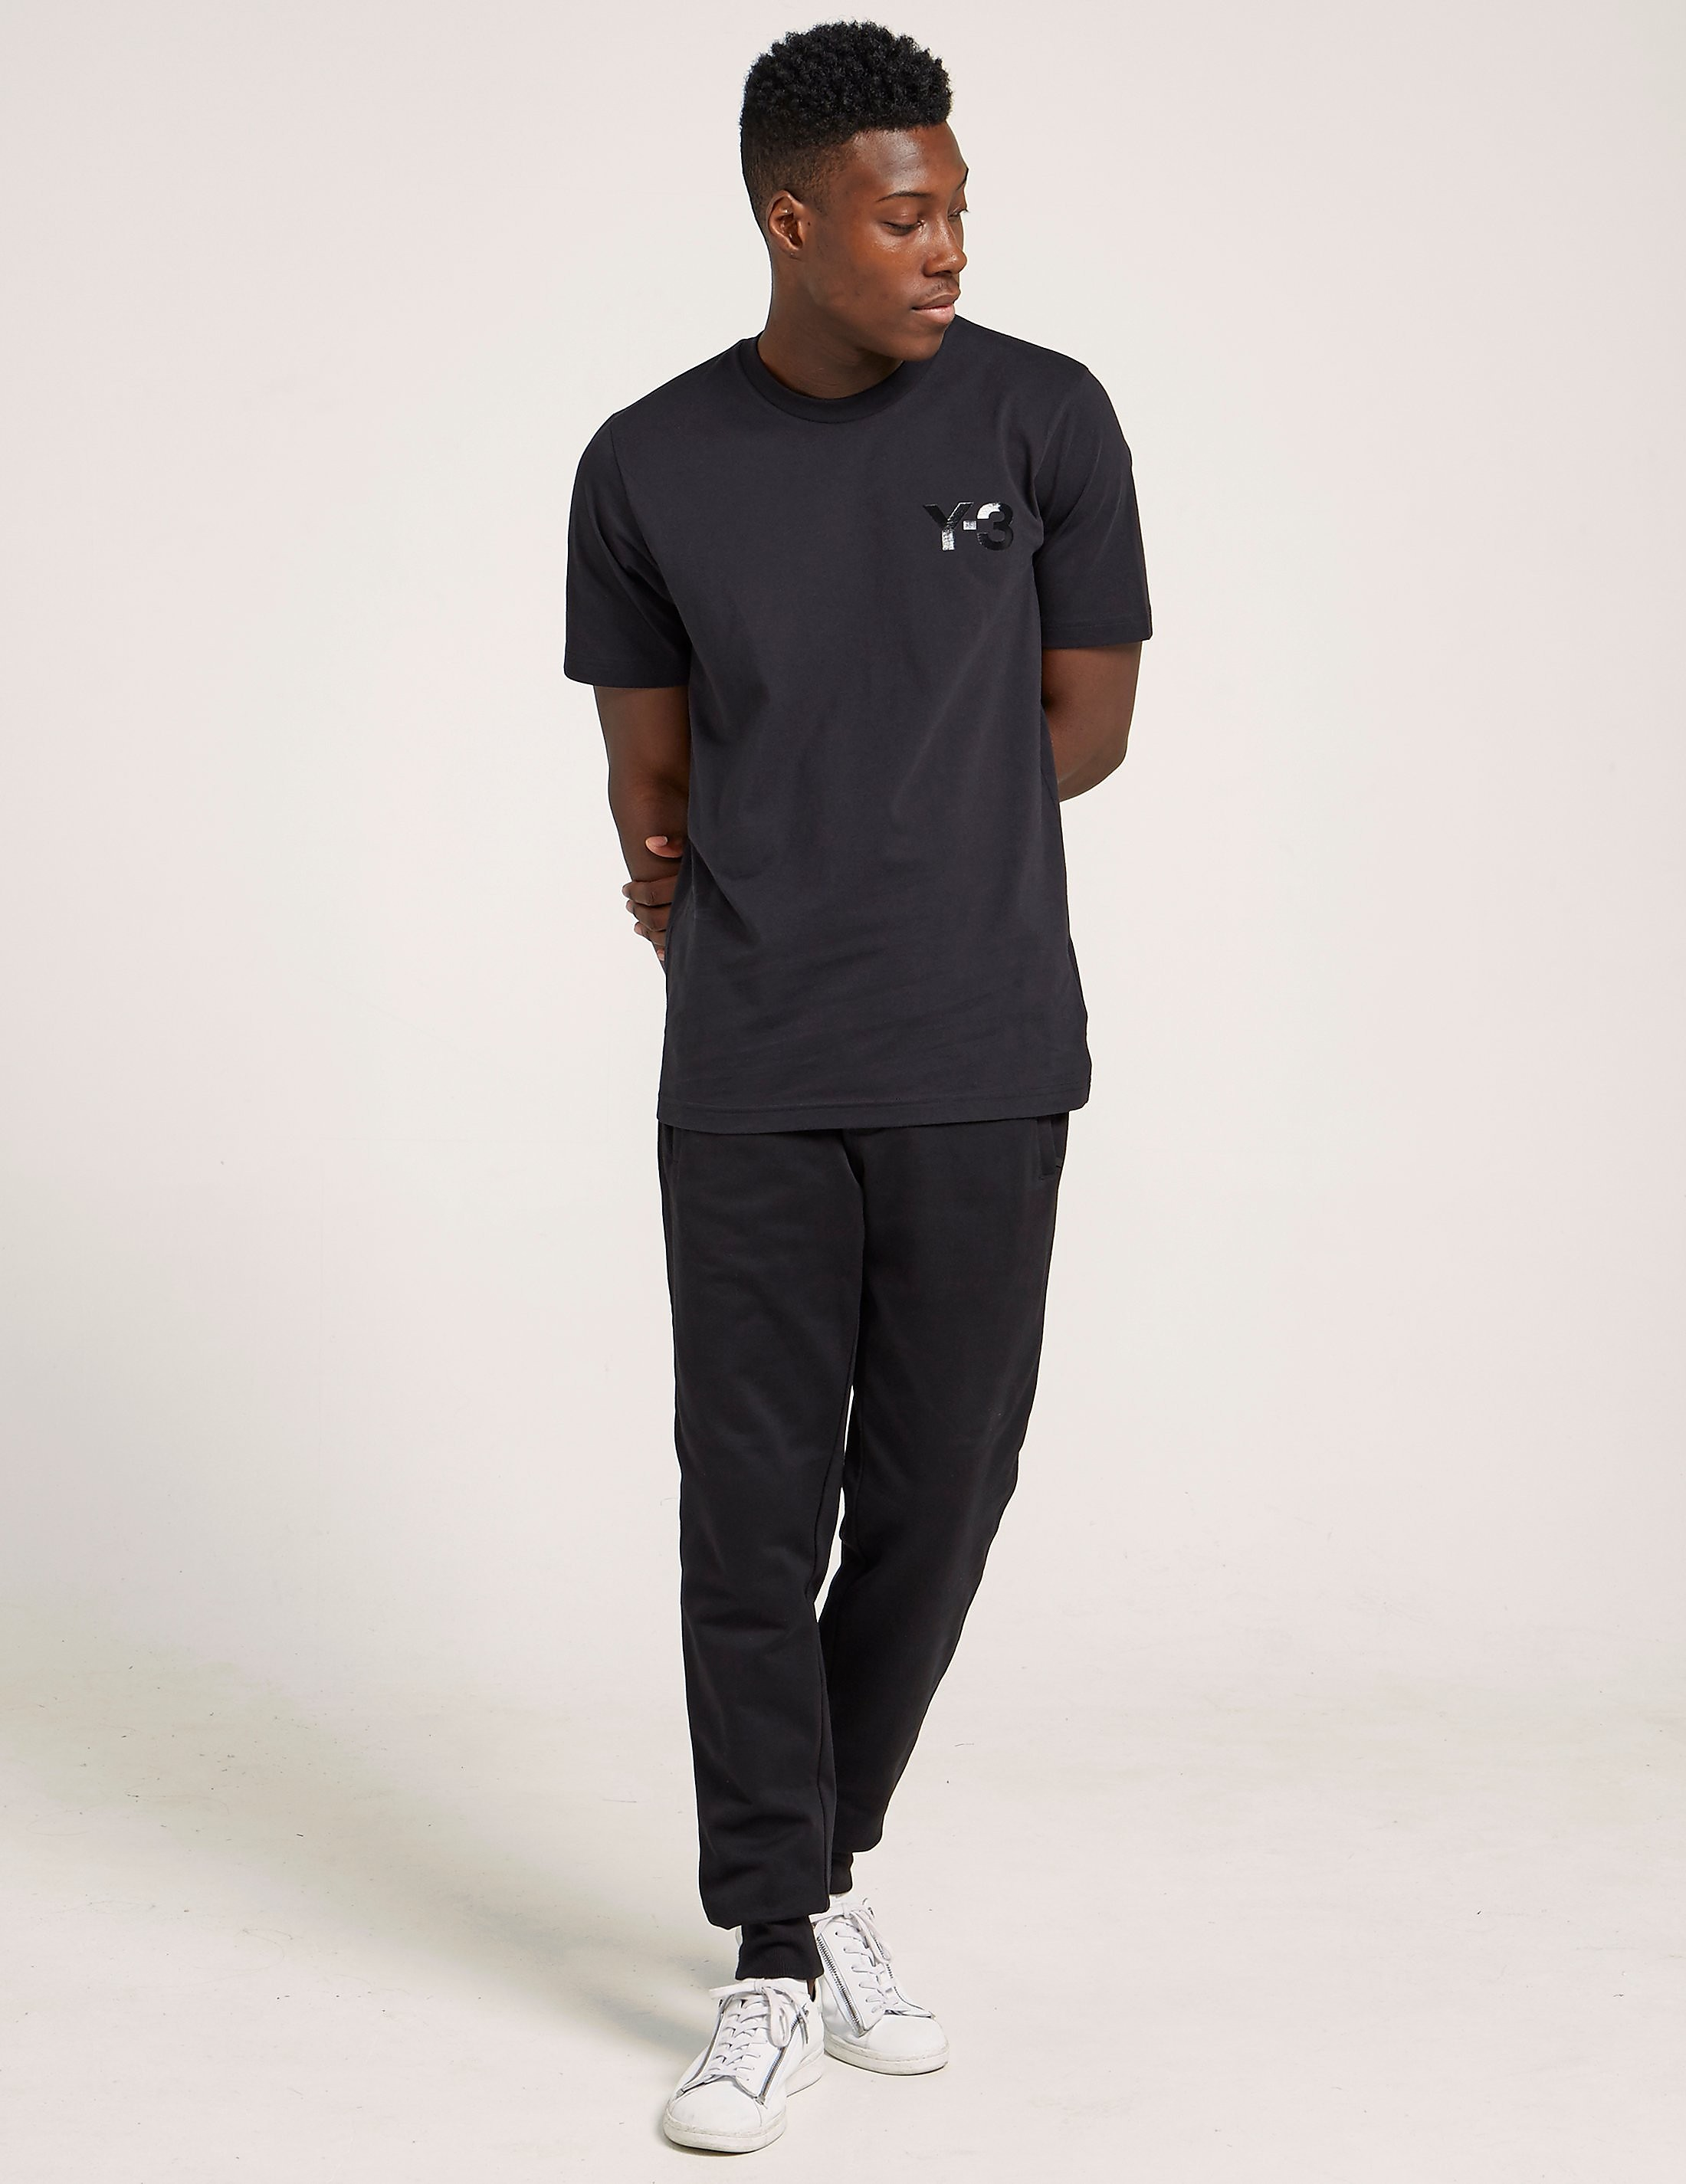 Y-3 Classic Short Sleeve T-Shirt